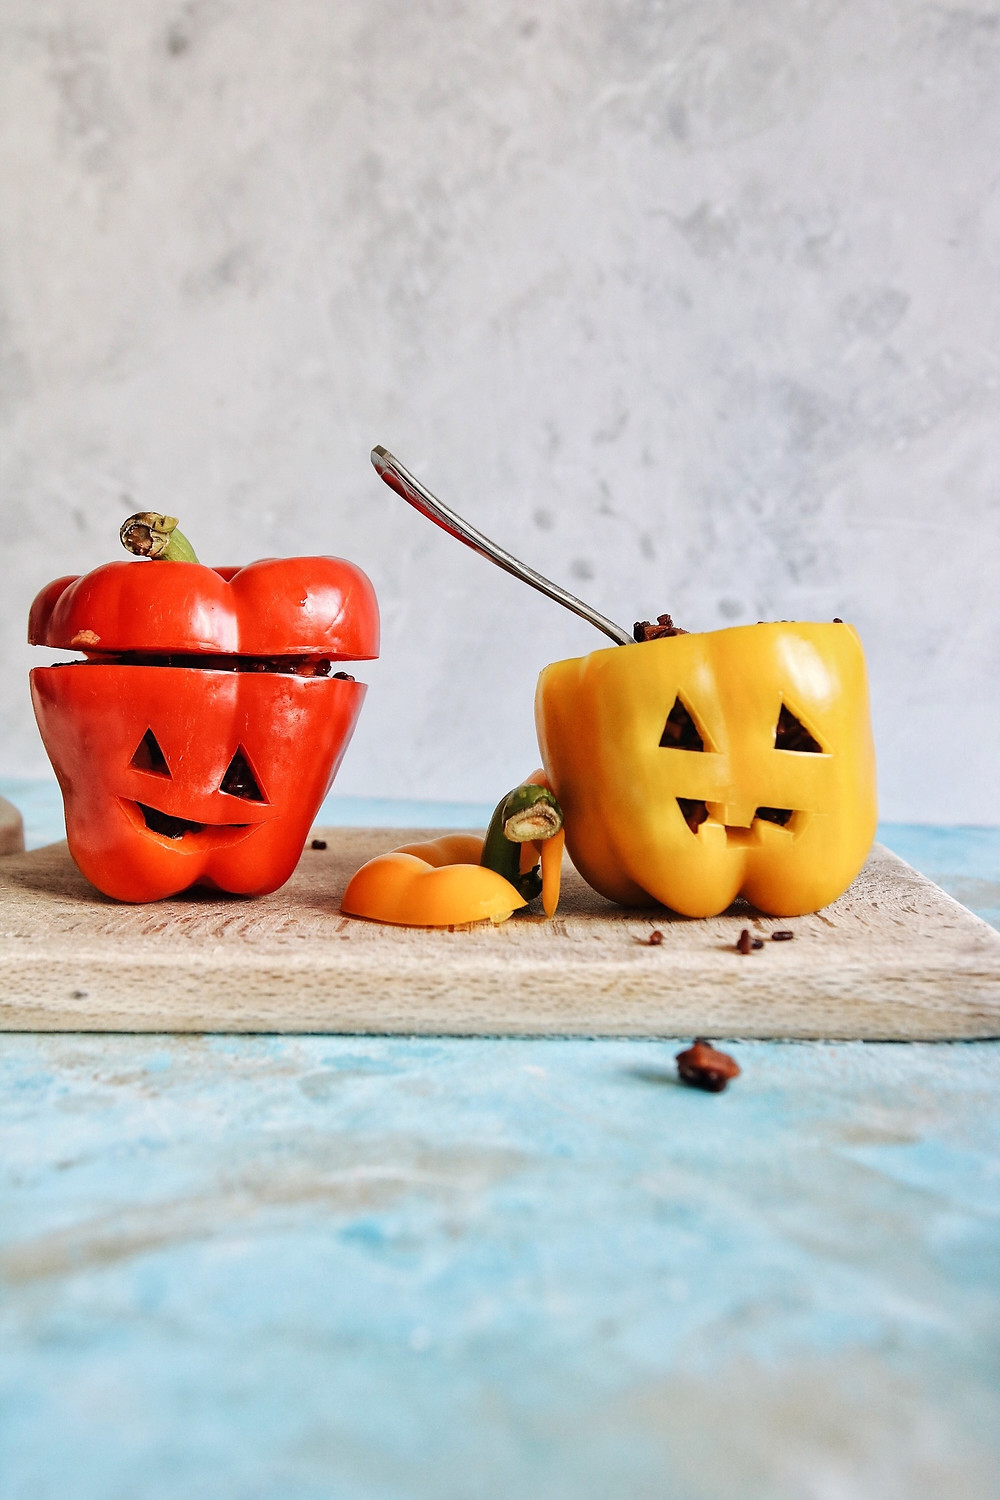 A red and yellow bell pepper sit side by side, both carved like jack o lanterns and stuffed with a gluten free rice risotto.